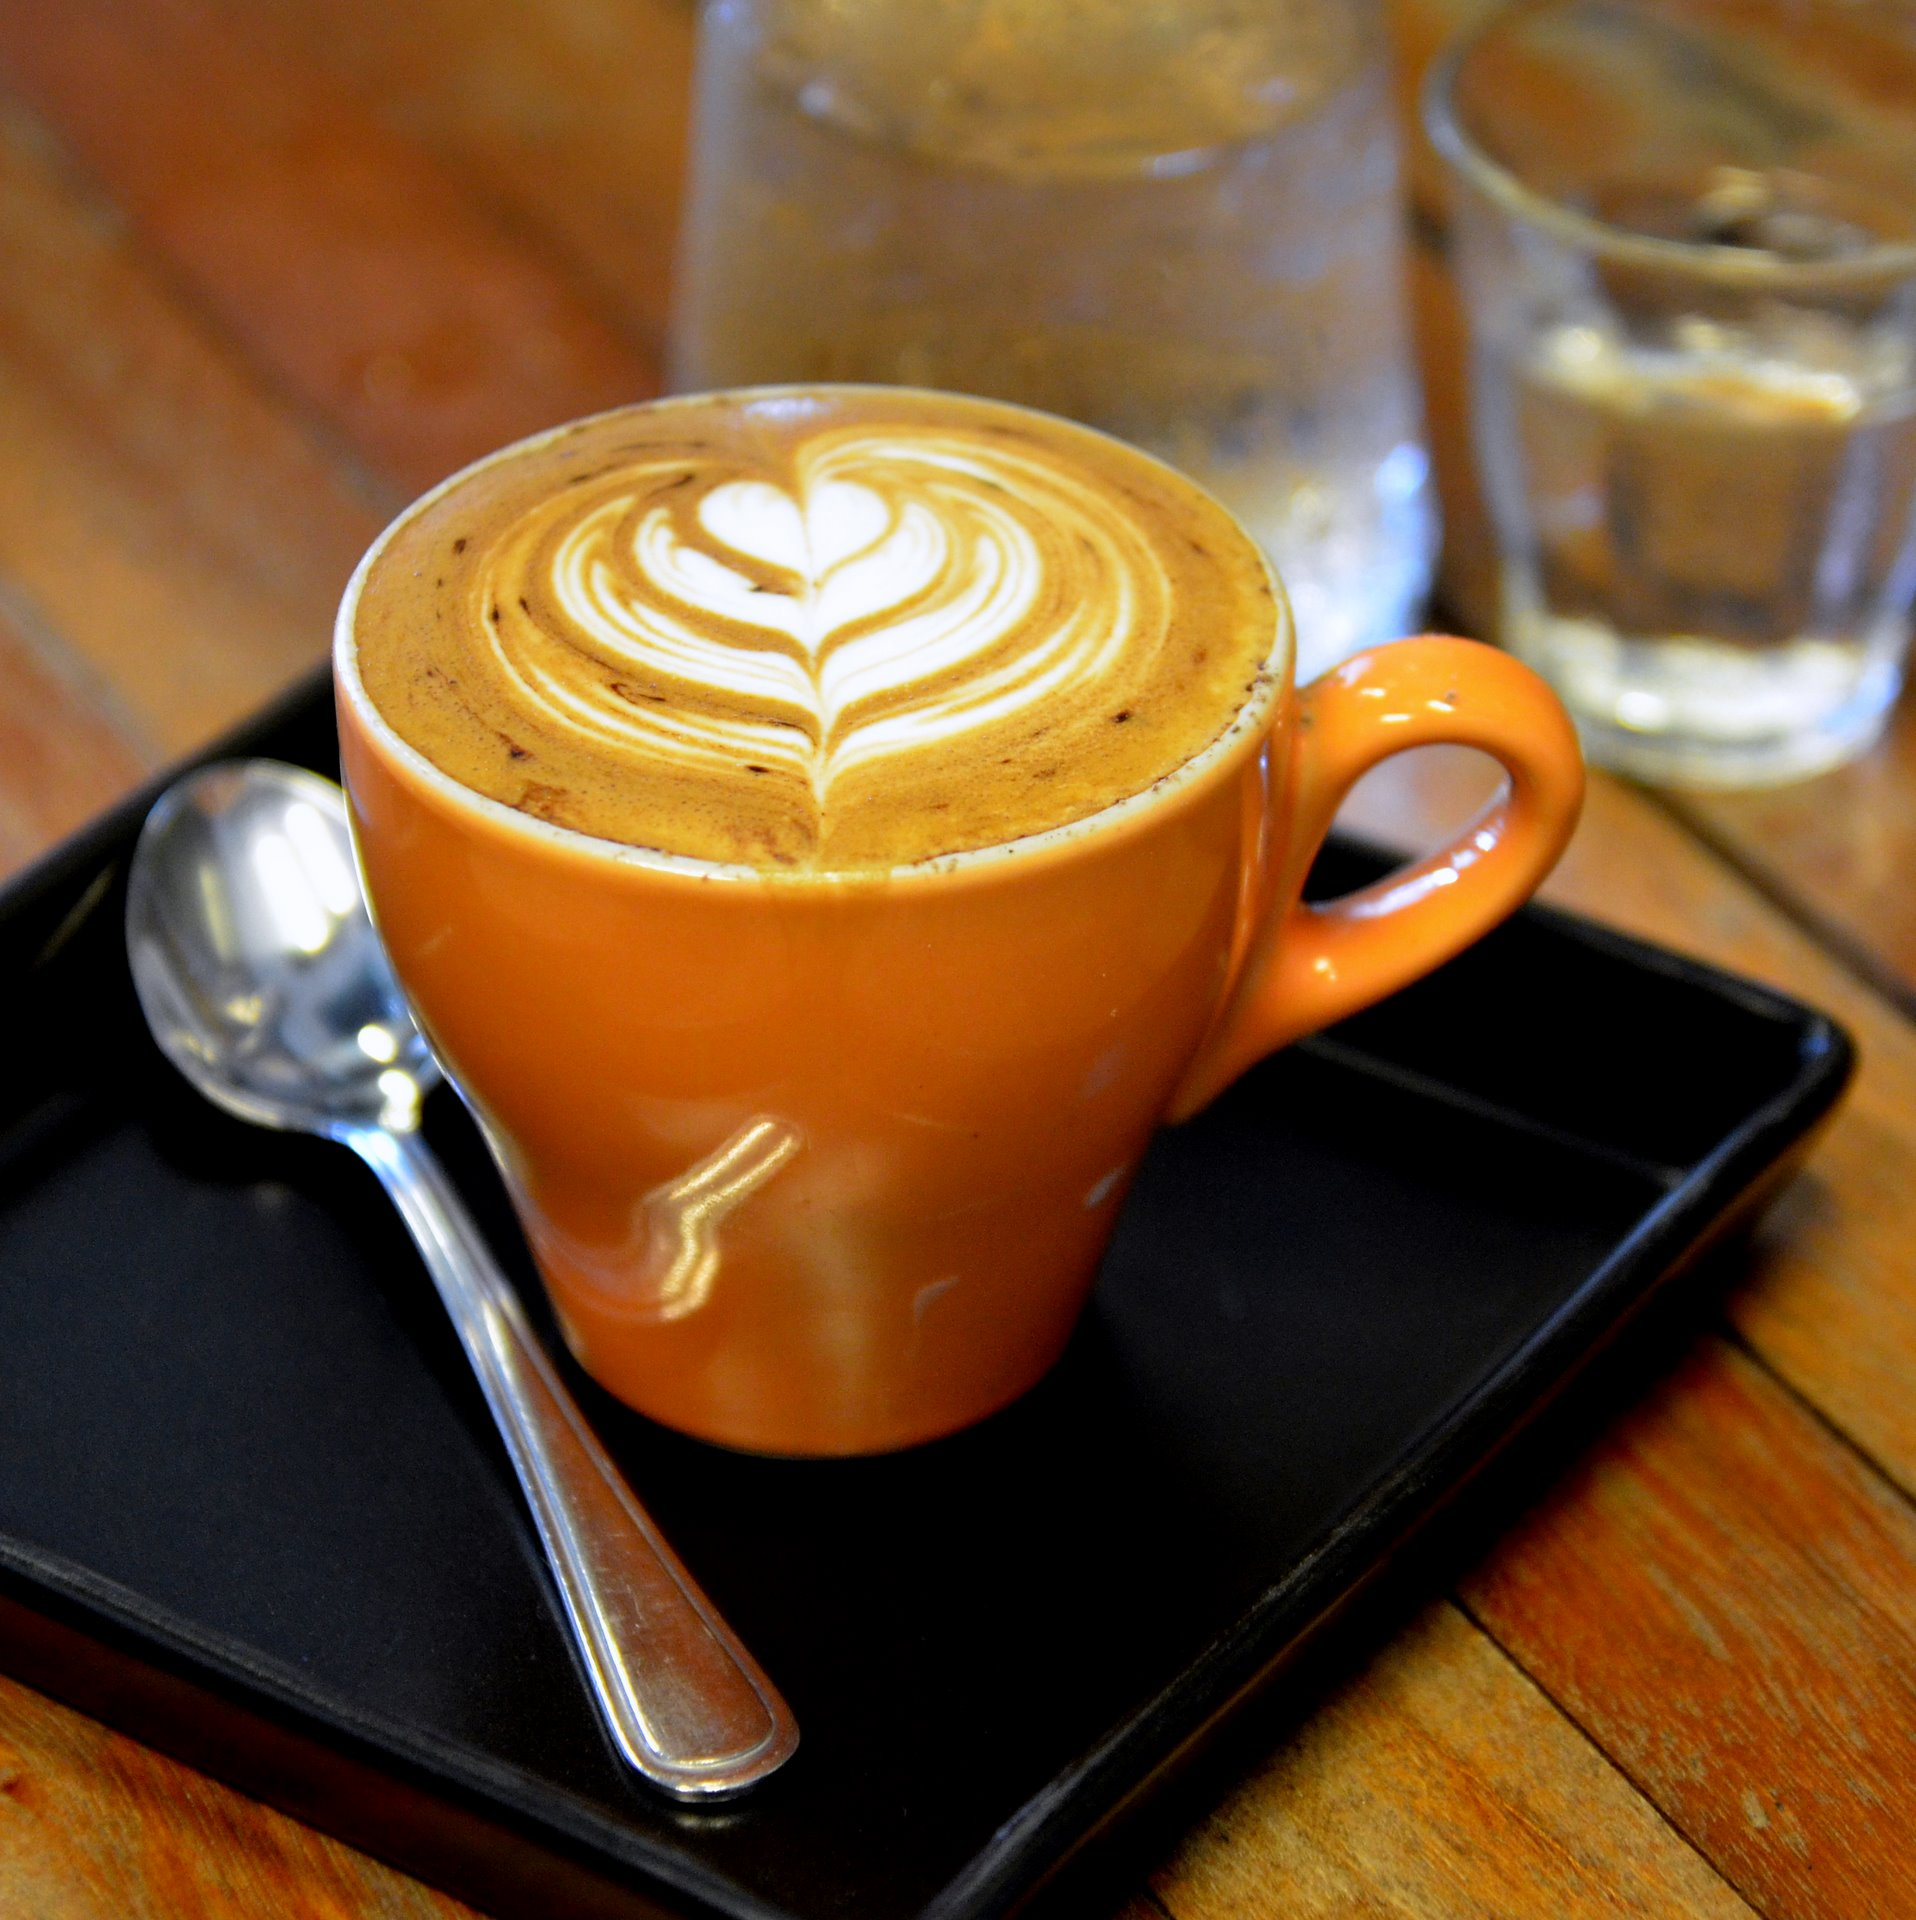 Hd Good Afternoon Wallpaper Top 8 Best Latte Machines For Delicious Coffee